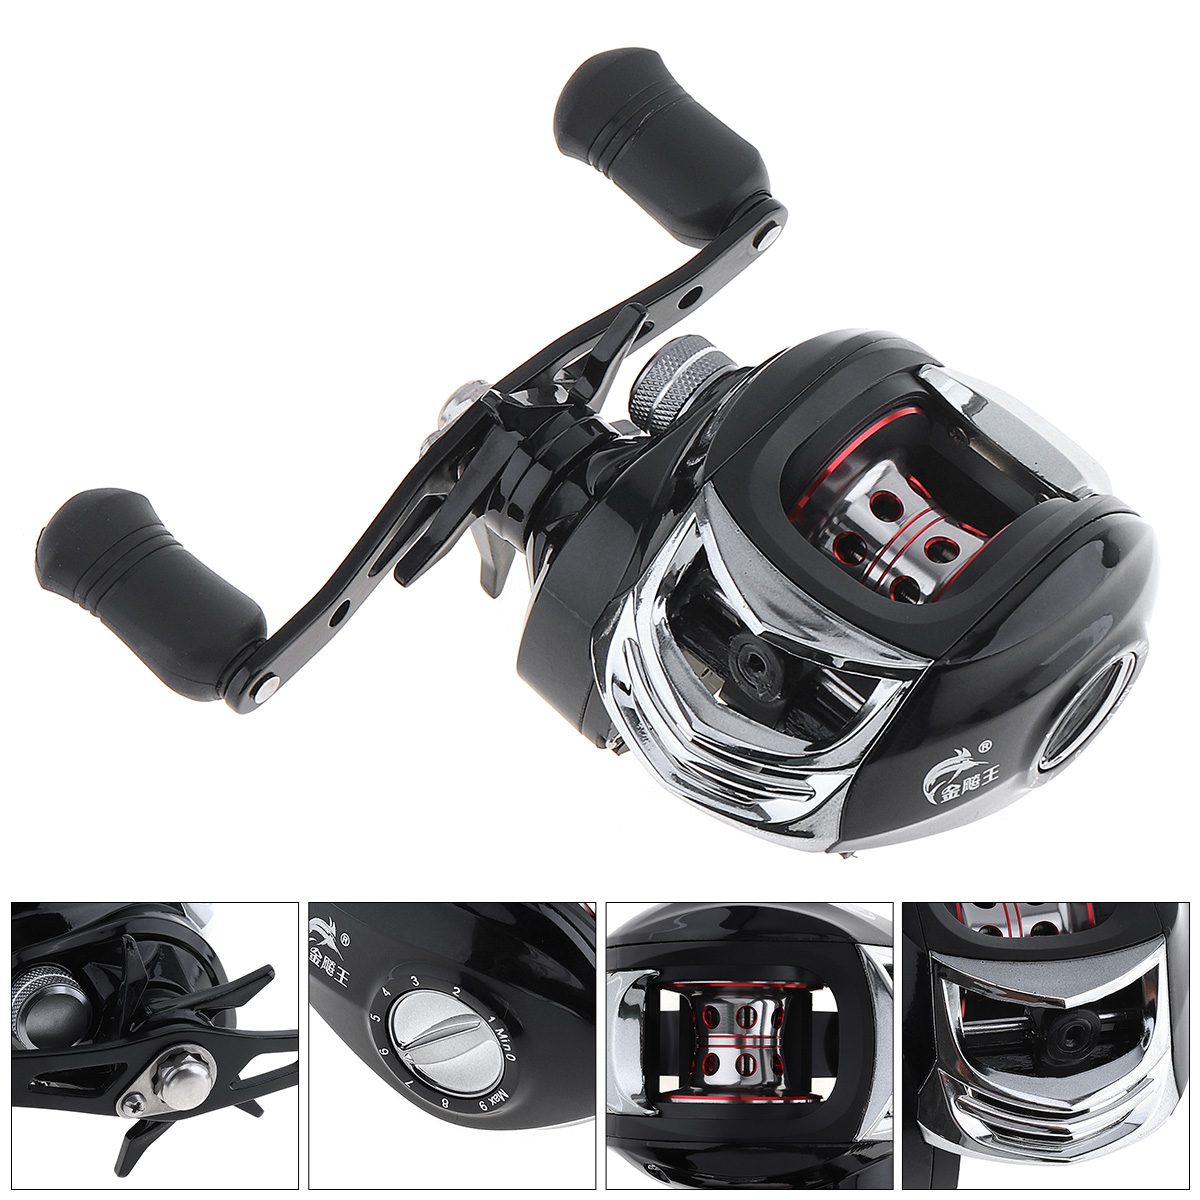 17+1BB Baitcasting Fishing Reel 7.2:1 Bait Casting Reels Right Hand Reel with One Way Clutch Fish Reel nunatak original 2017 baitcasting fishing reel t3 mx 1016sh 5 0kg 6 1bb 7 1 1 right hand casting fishing reels saltwater wheel